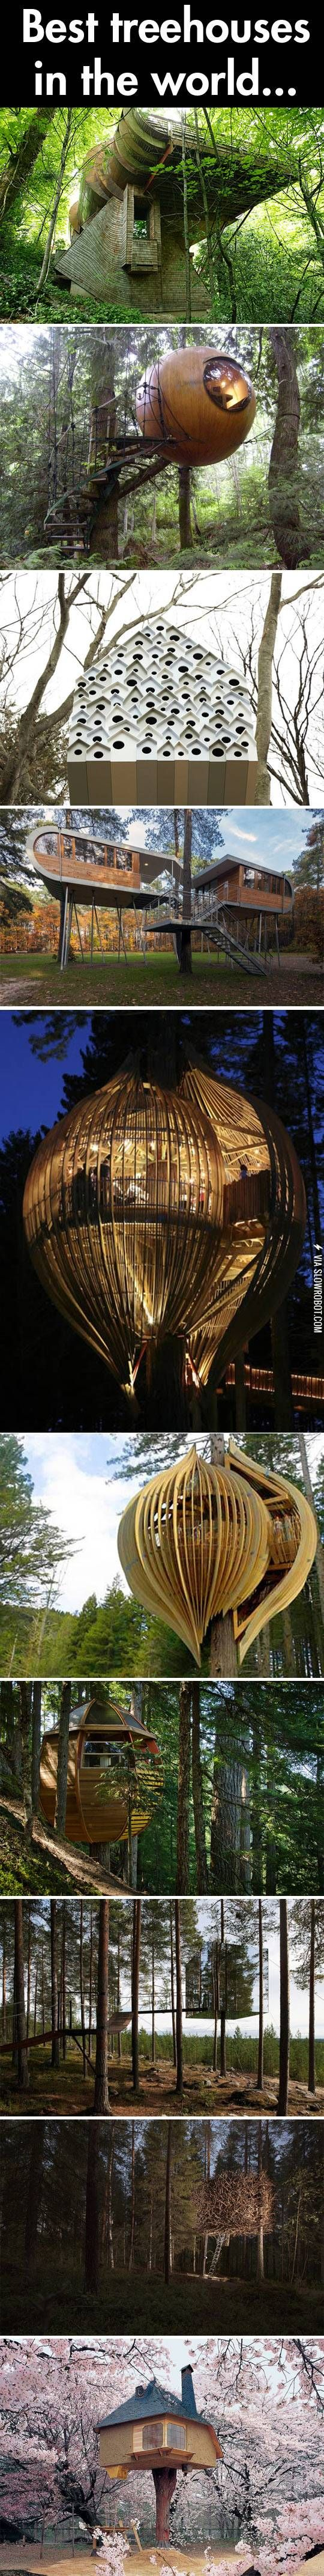 Best treehouses in the world.